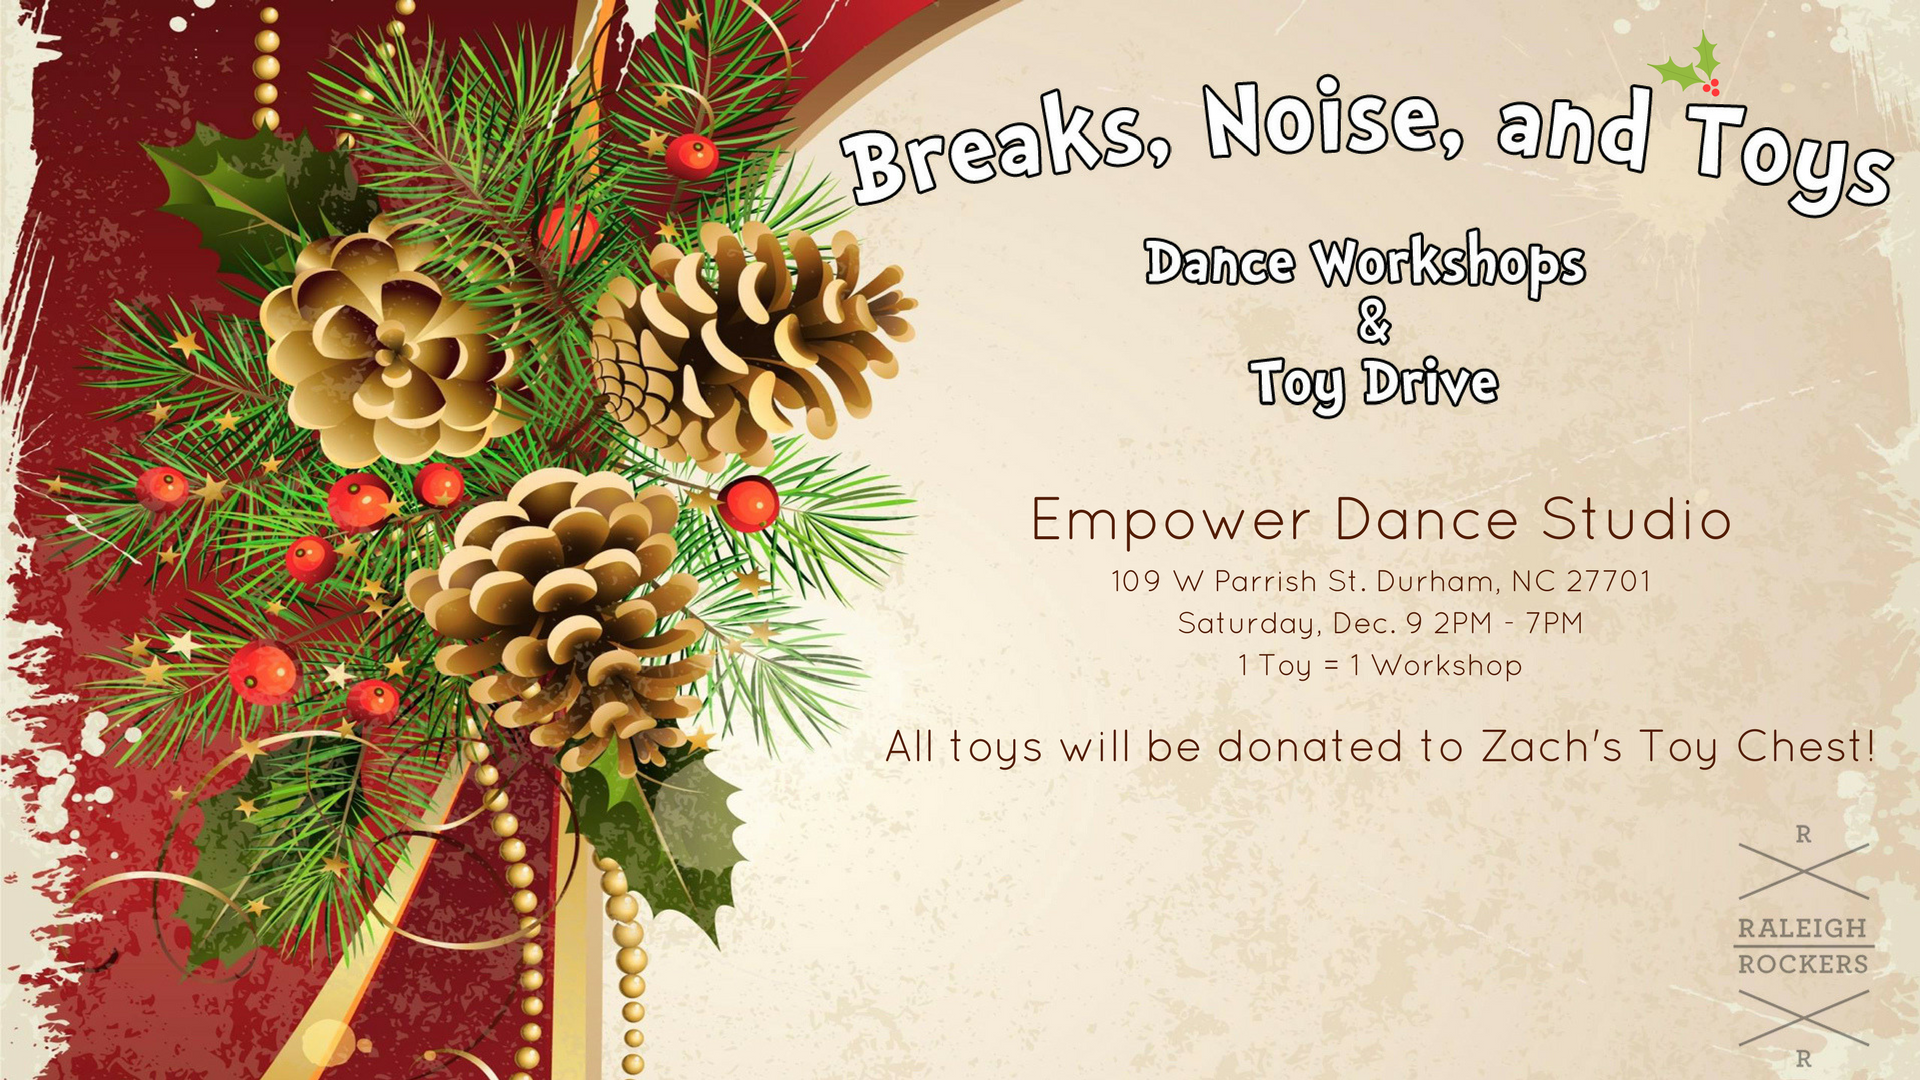 Dance for a Cause! Make a donation to the Toy Drive!